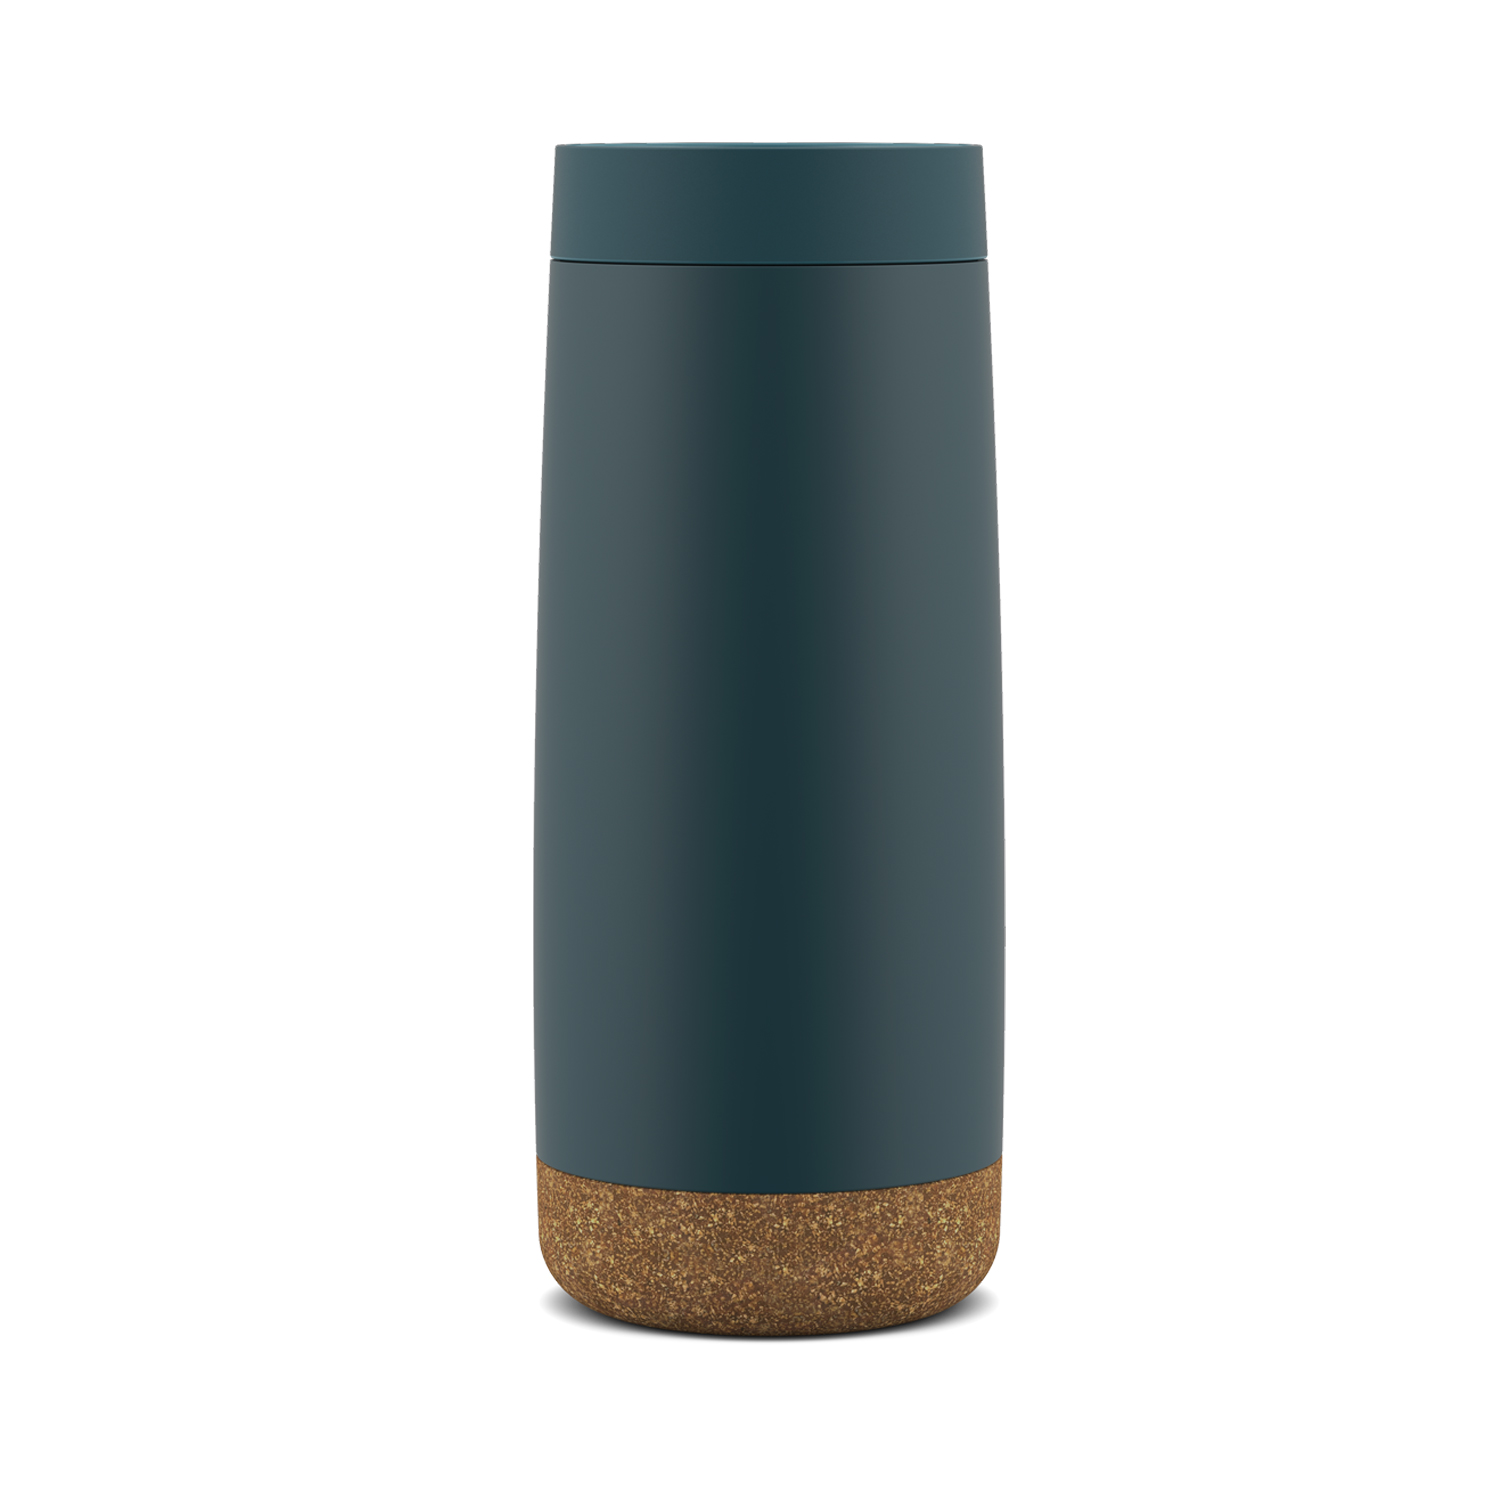 Cole 16oz Stainless Steel Travel Mug - $19.99